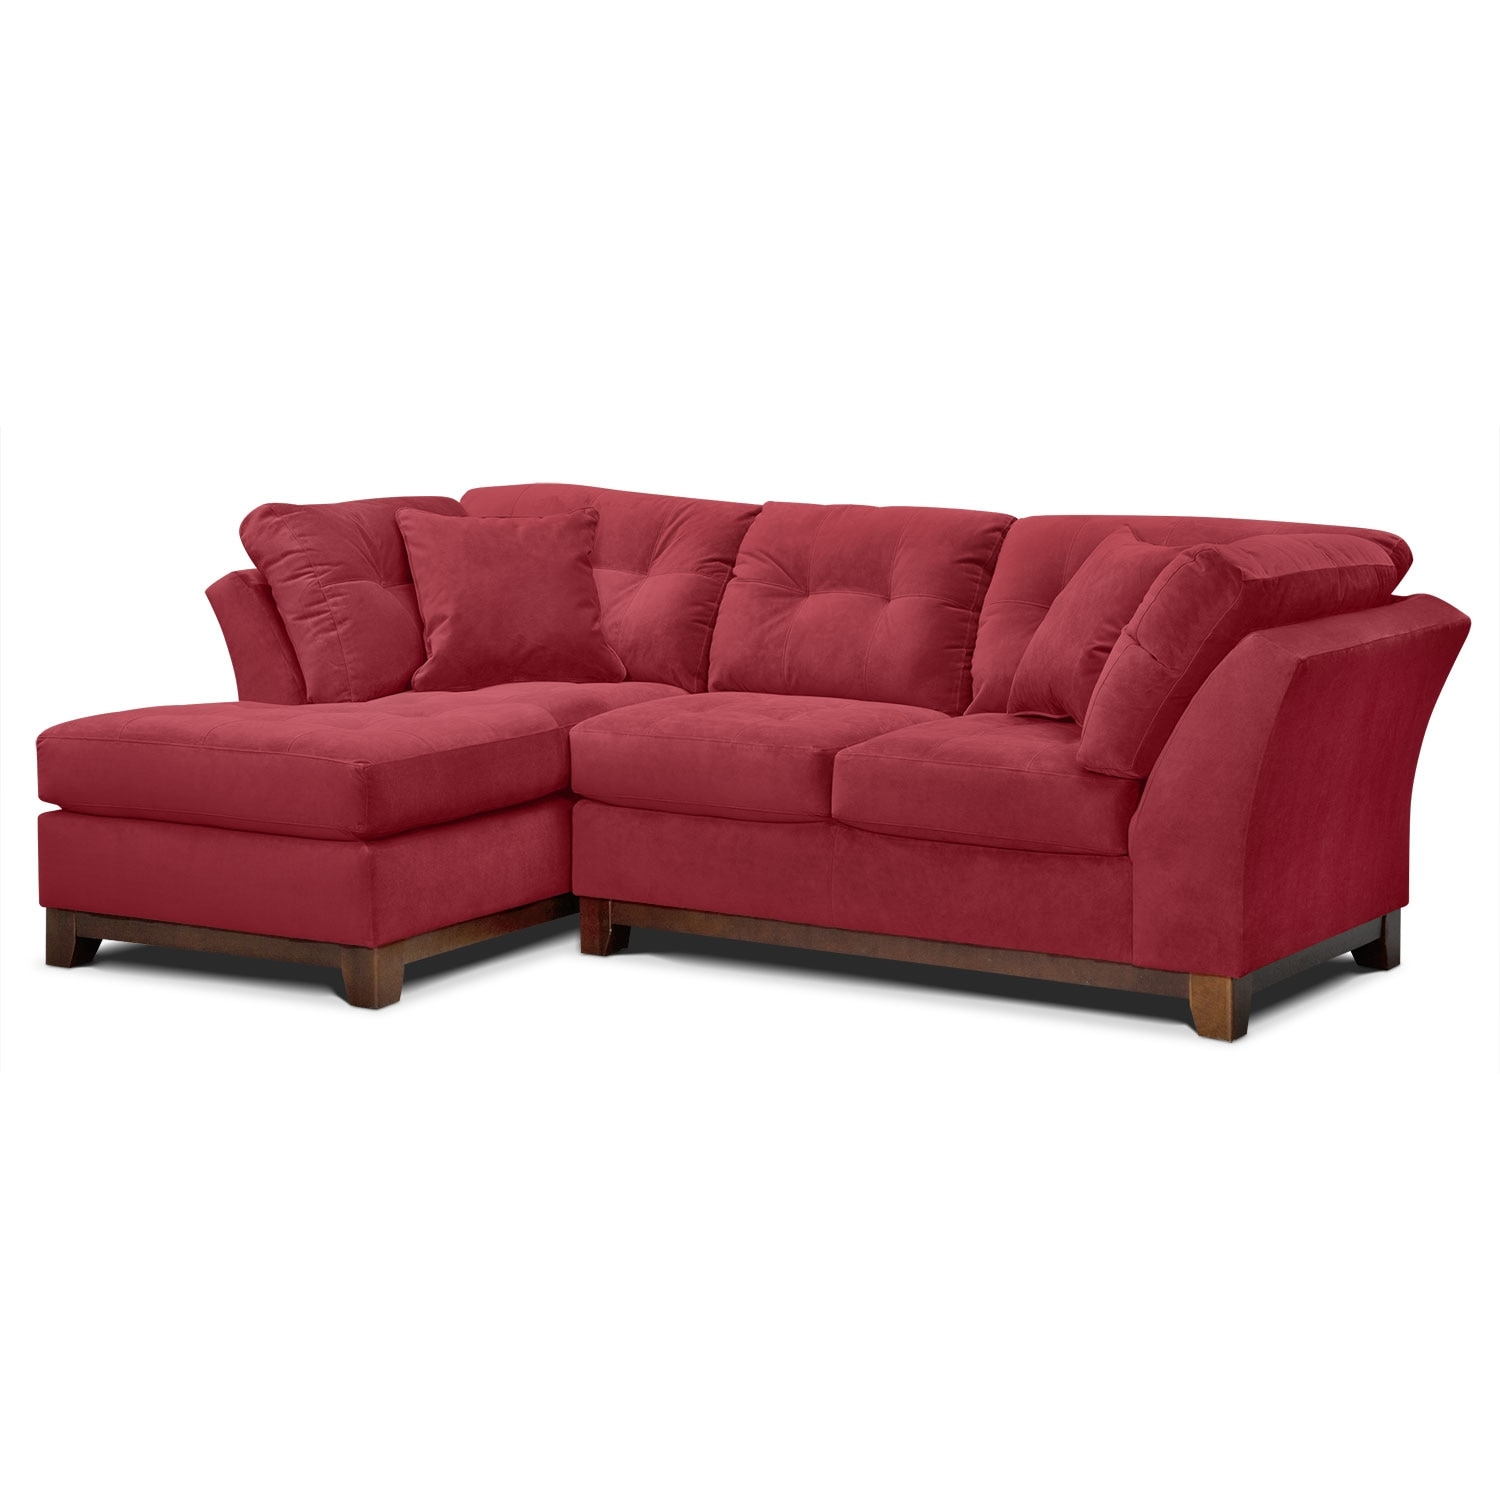 Living Room Furniture - Solace 2-Piece Sectional with Left-Facing Chaise - Poppy